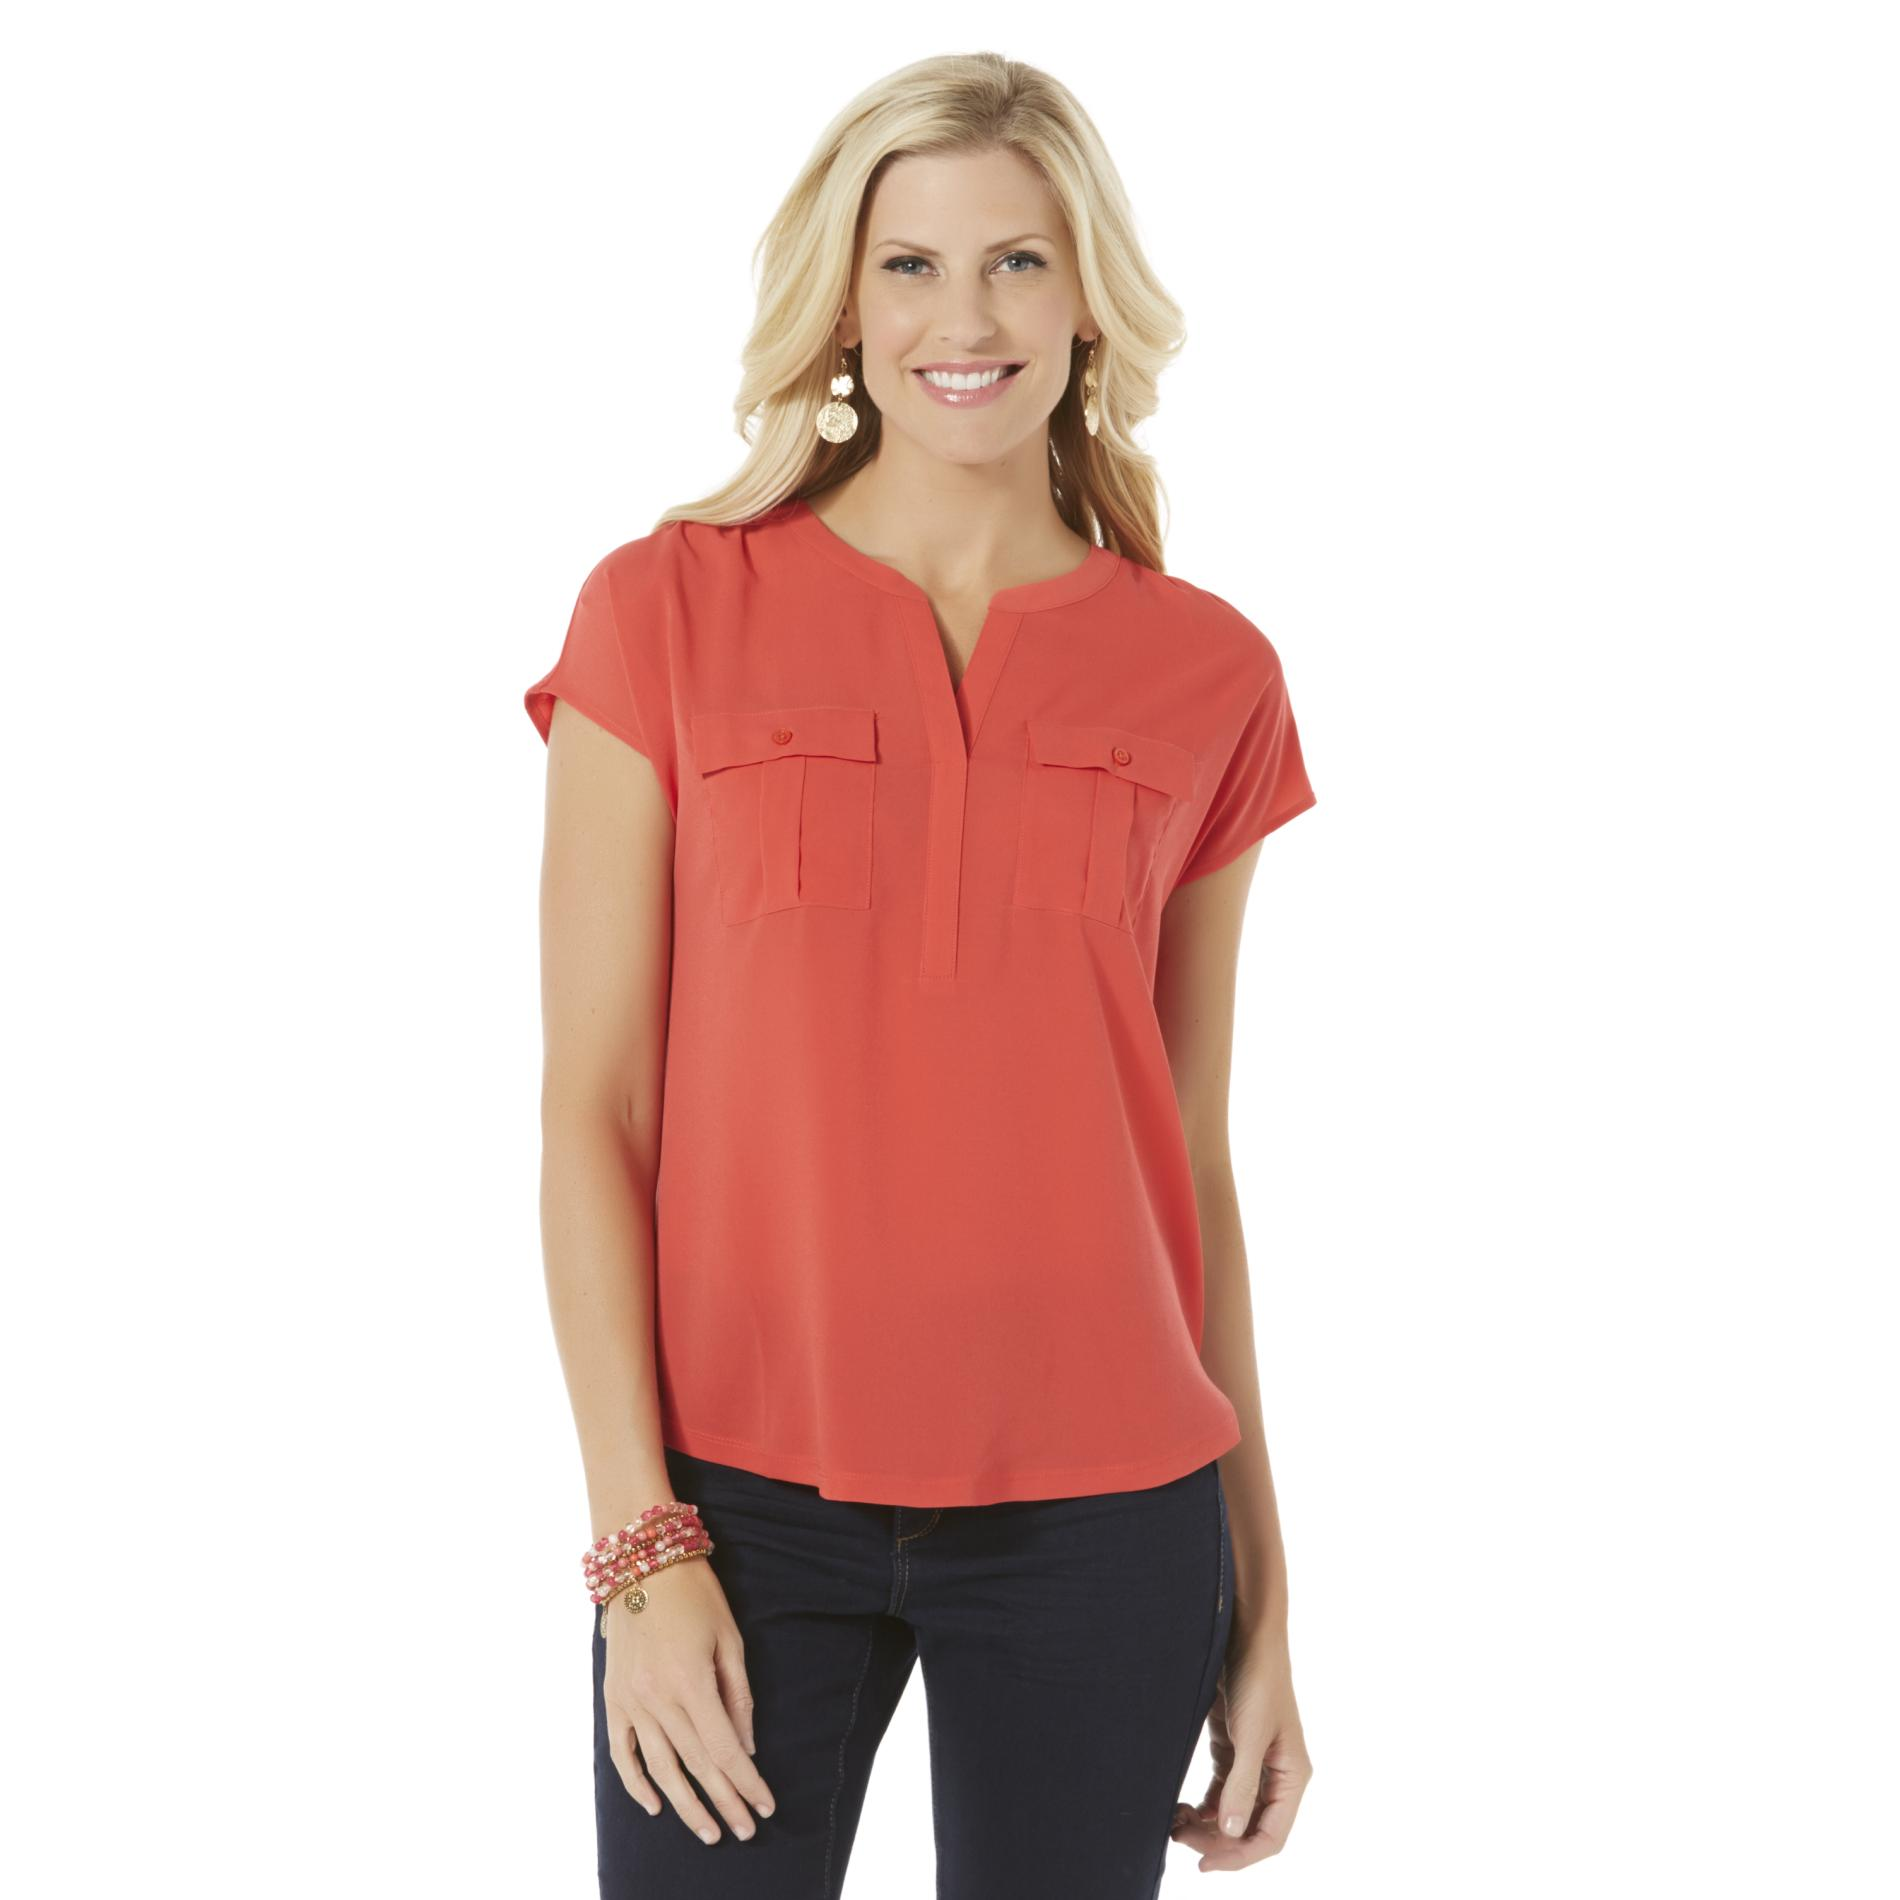 Jaclyn Smith Women39s YNeck Blouse Clothing Shoes